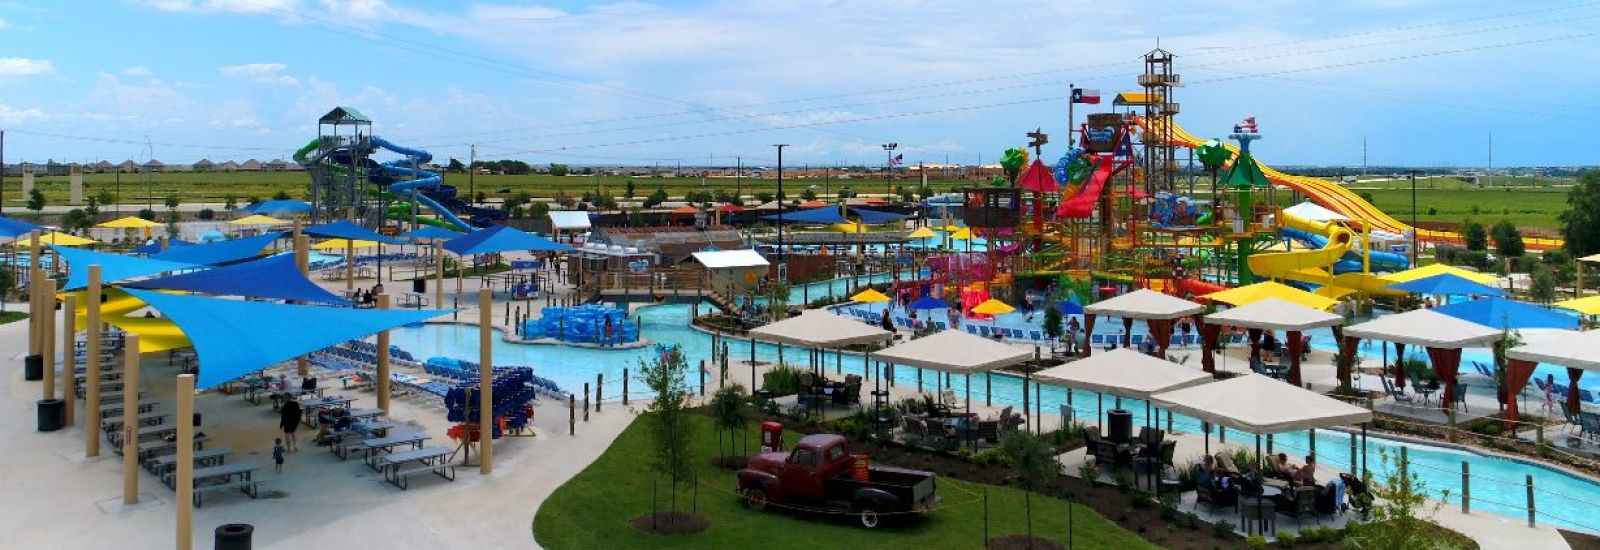 Typhoon texas katy coupons